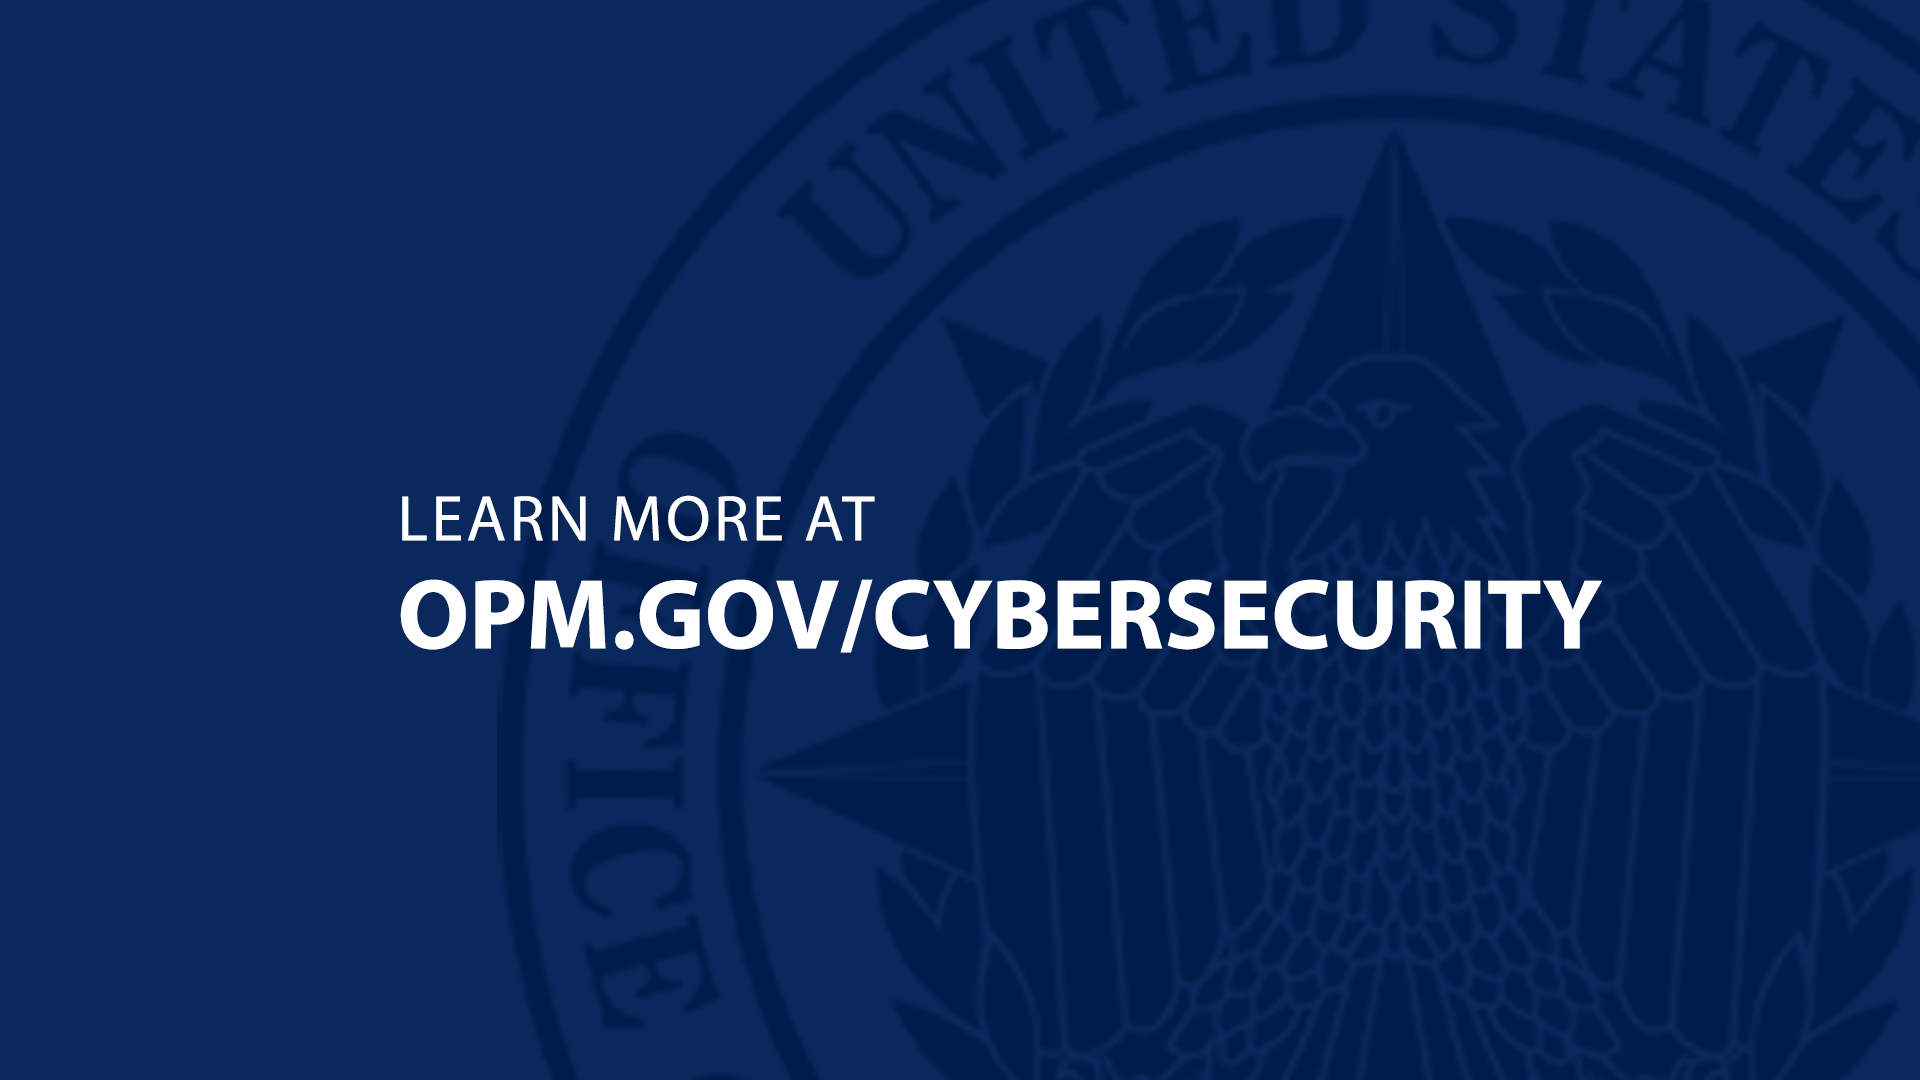 Learn more at www.opm.gov/cybersecurity